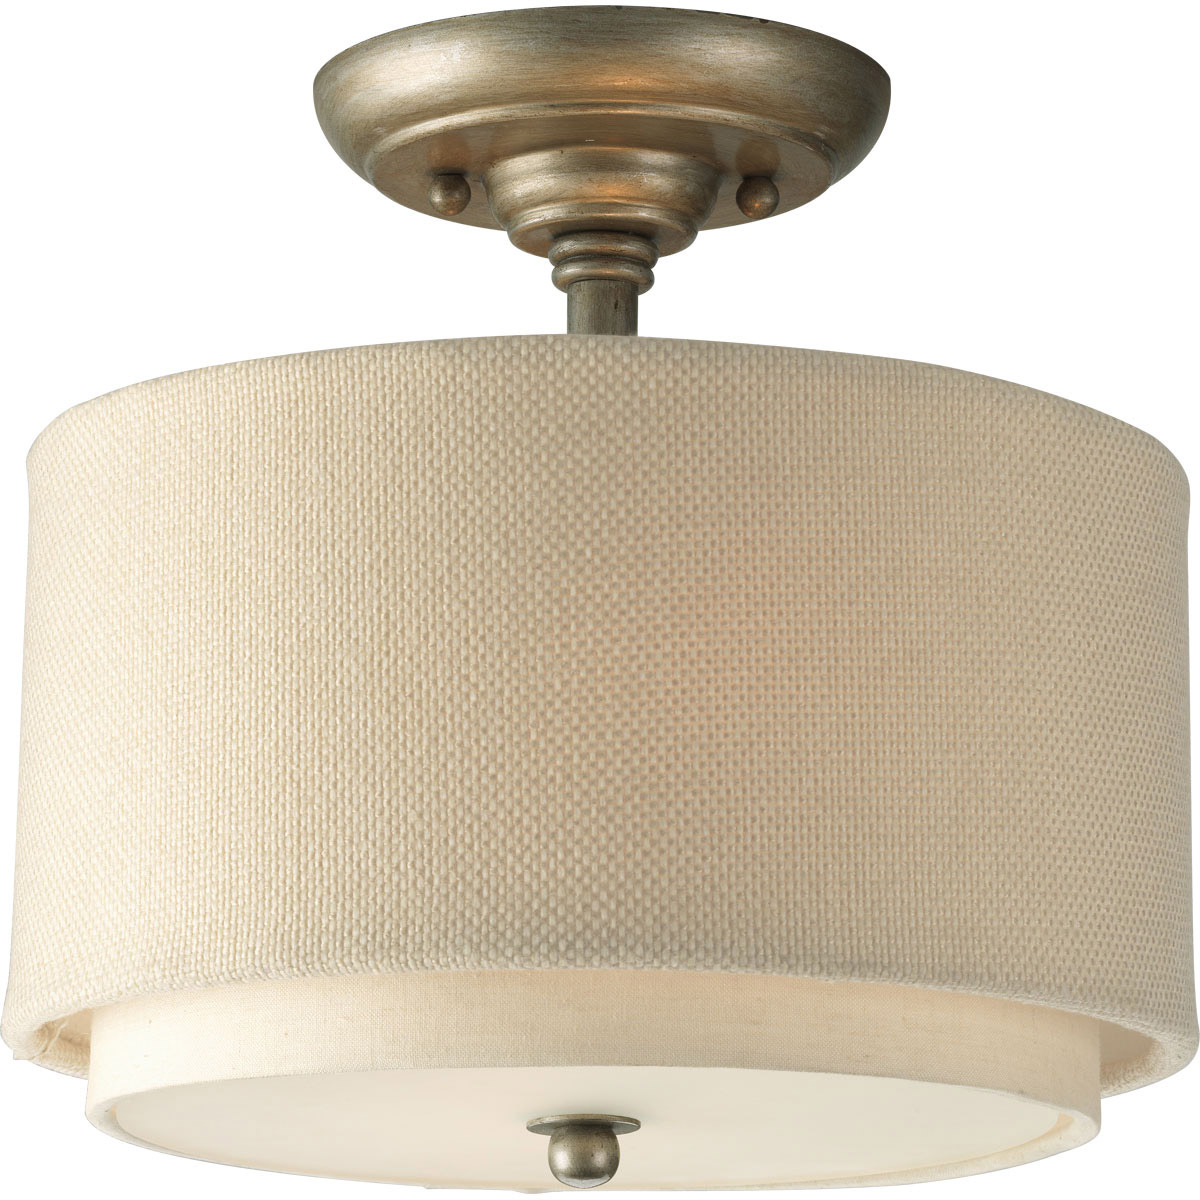 Progress Lighting P3886 134 Ashbury Semi Flush Ceiling Fixture